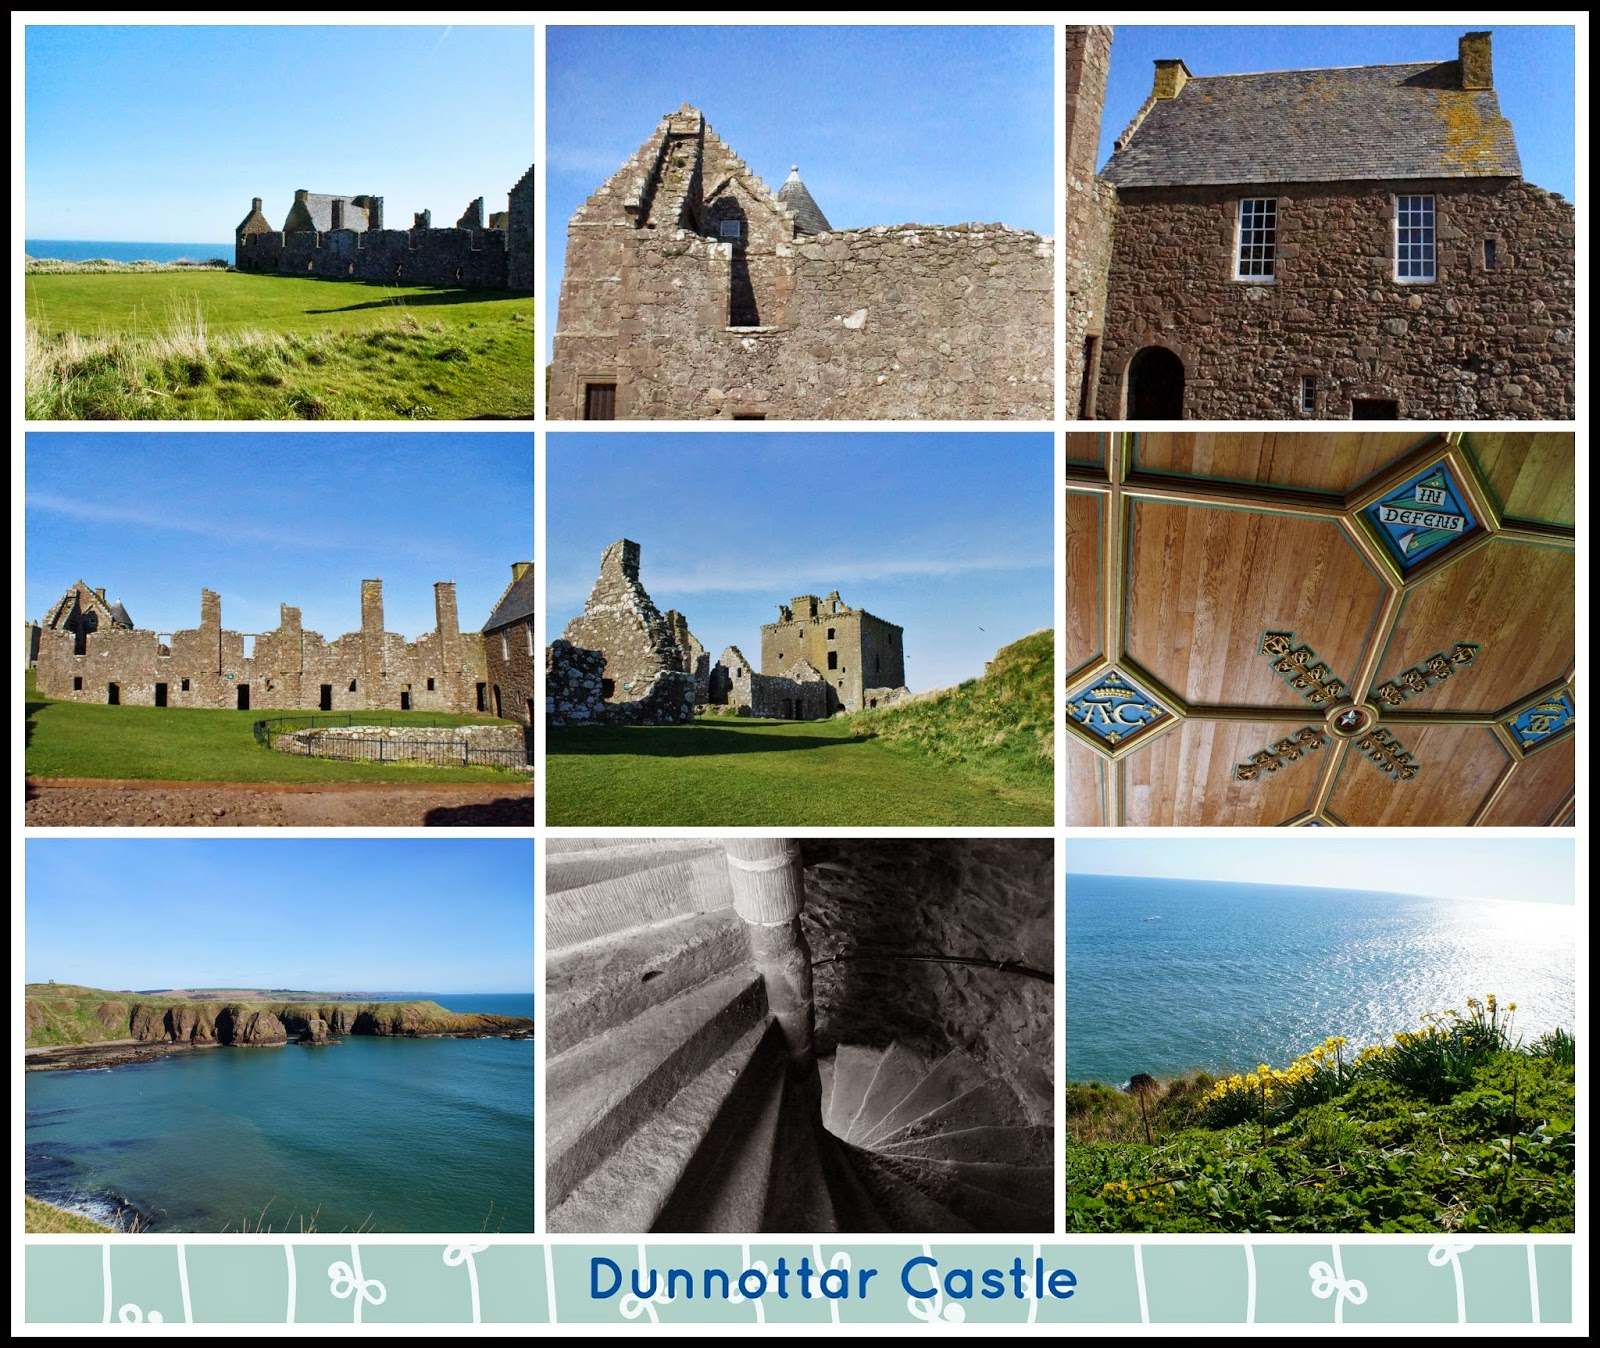 Dunnottar Castle collage - 'growourown.blogspot.com' ~ An allotment blog